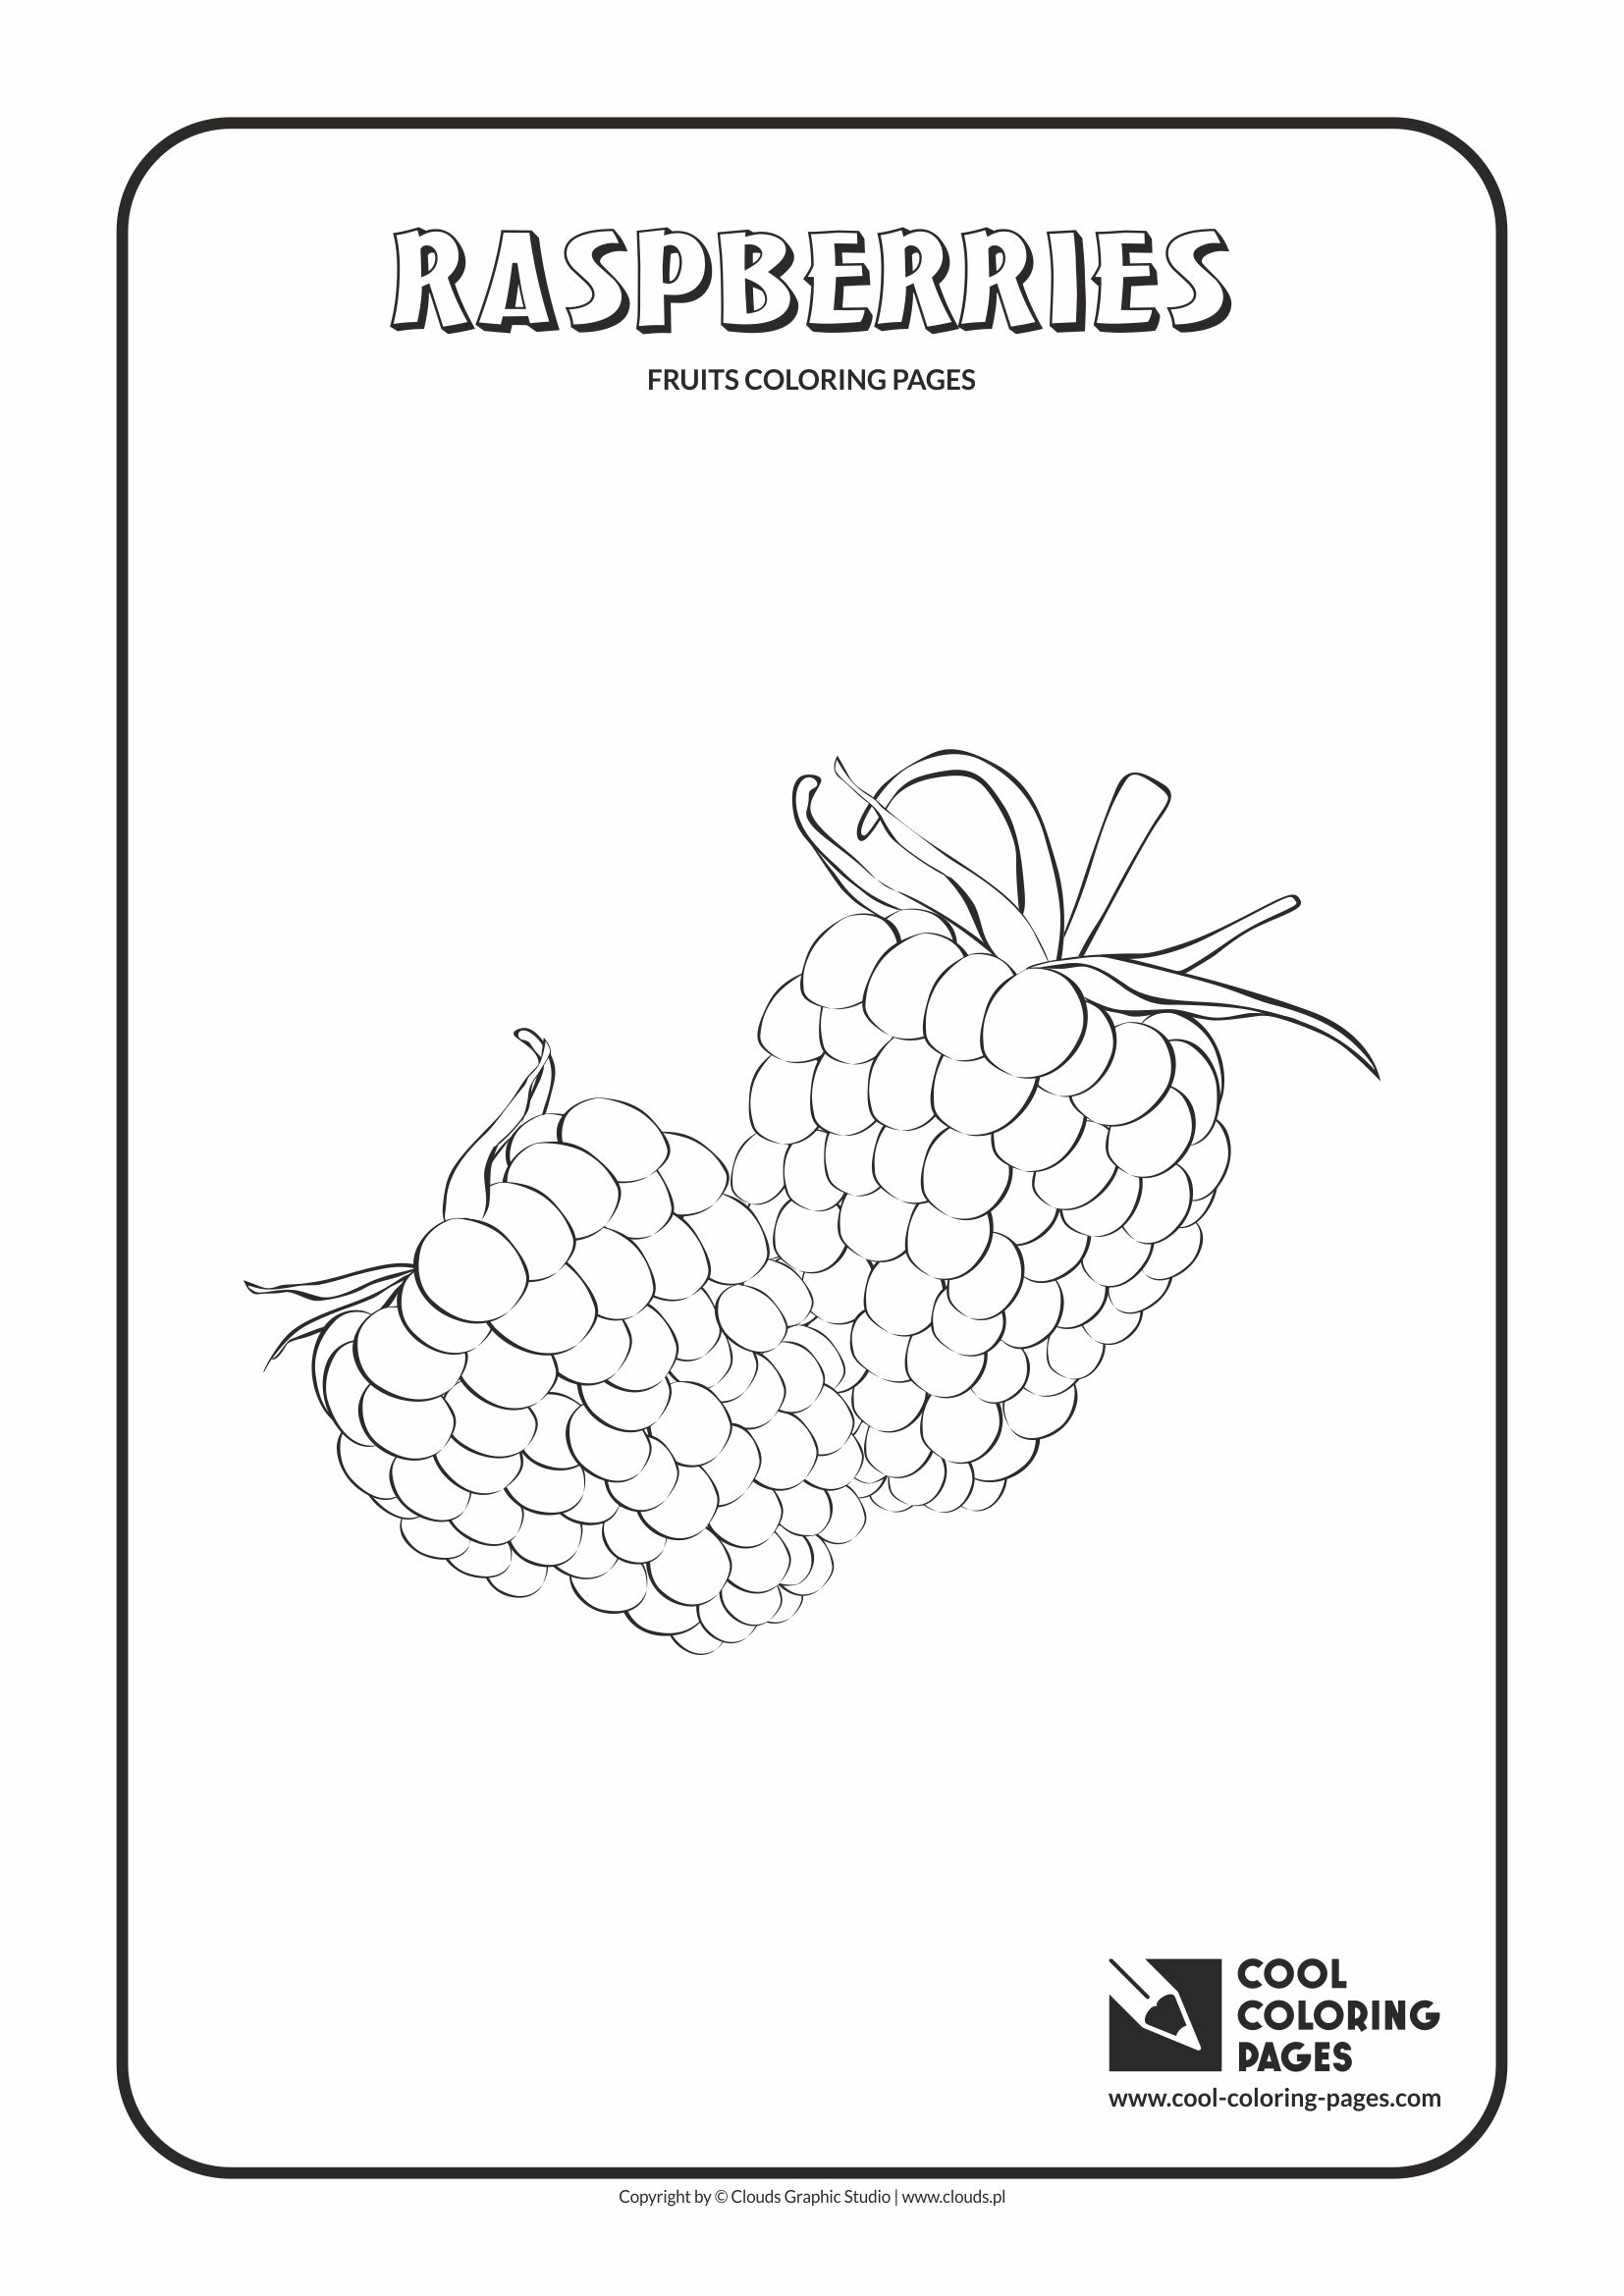 Cool Coloring Pages - Plants / Raspberries / Coloring page with raspberries